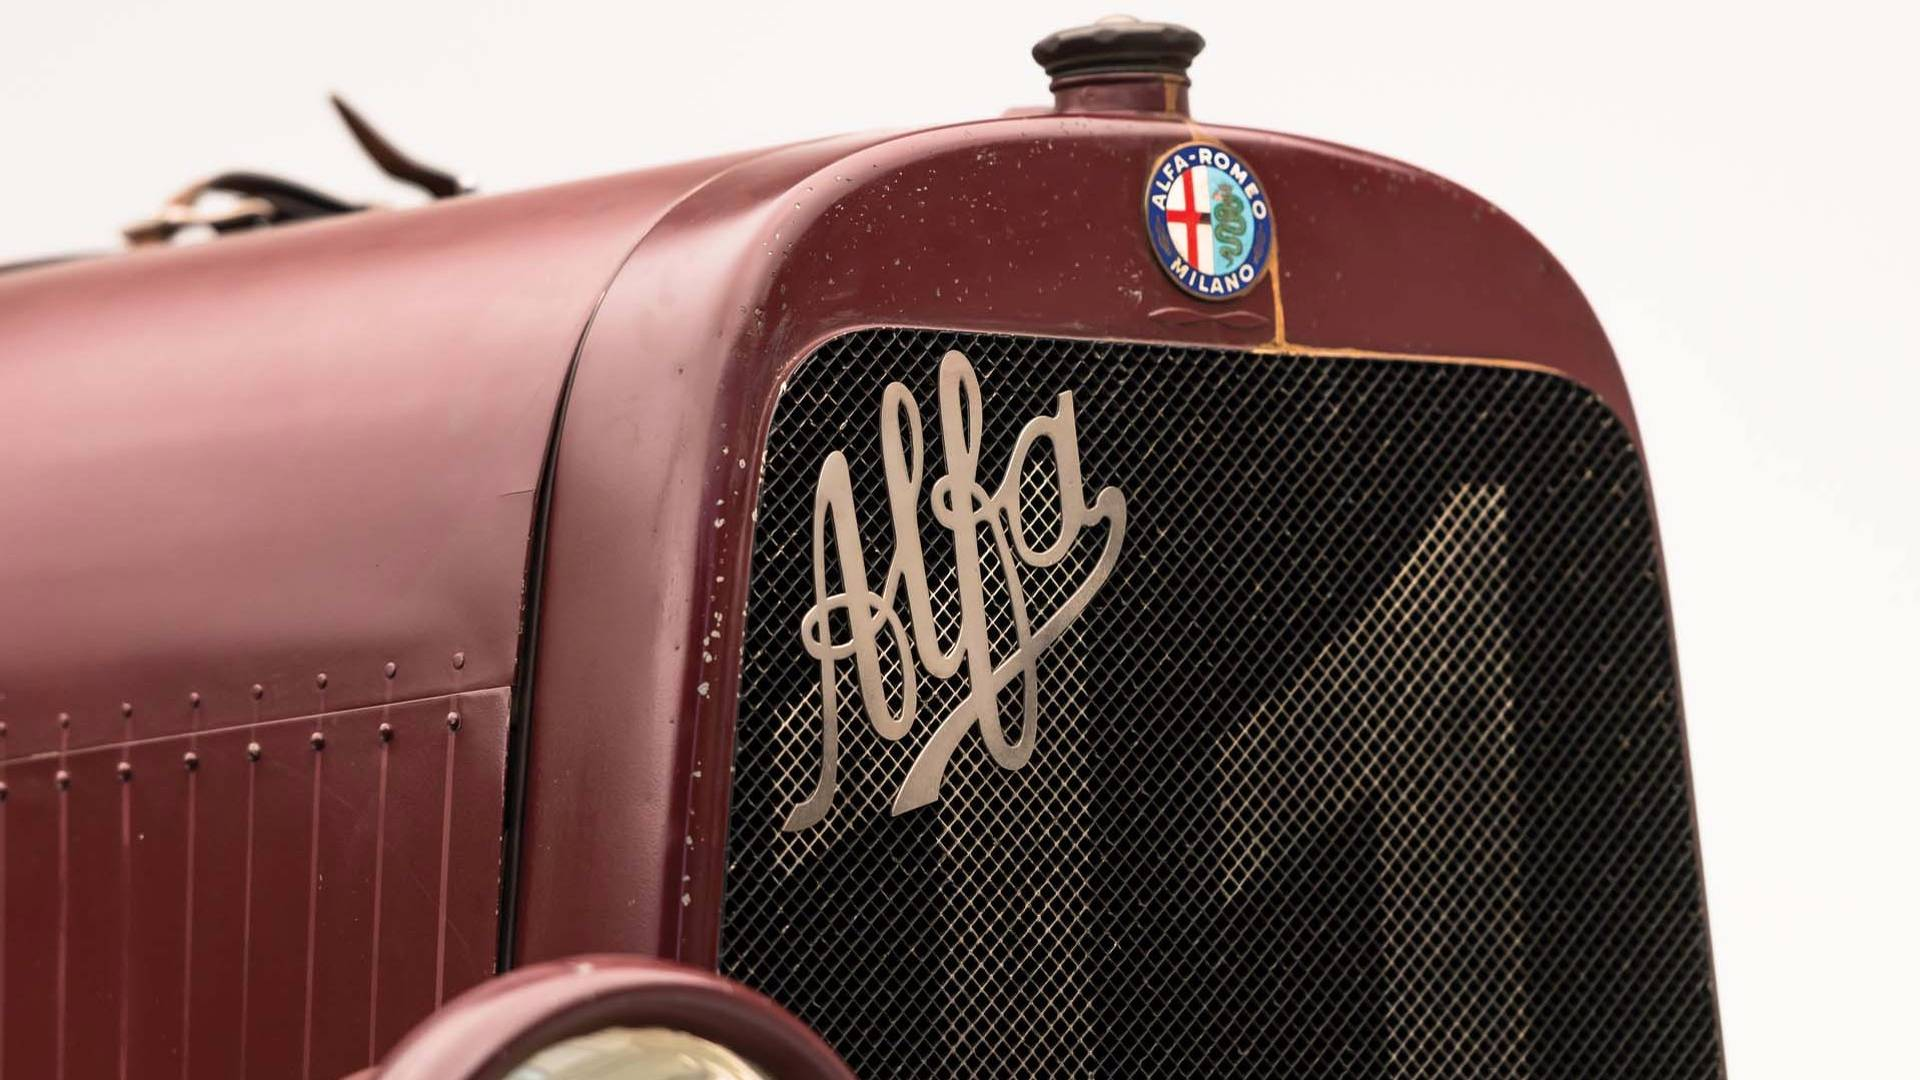 Alfa Romeo G1 1921 in auction (7)